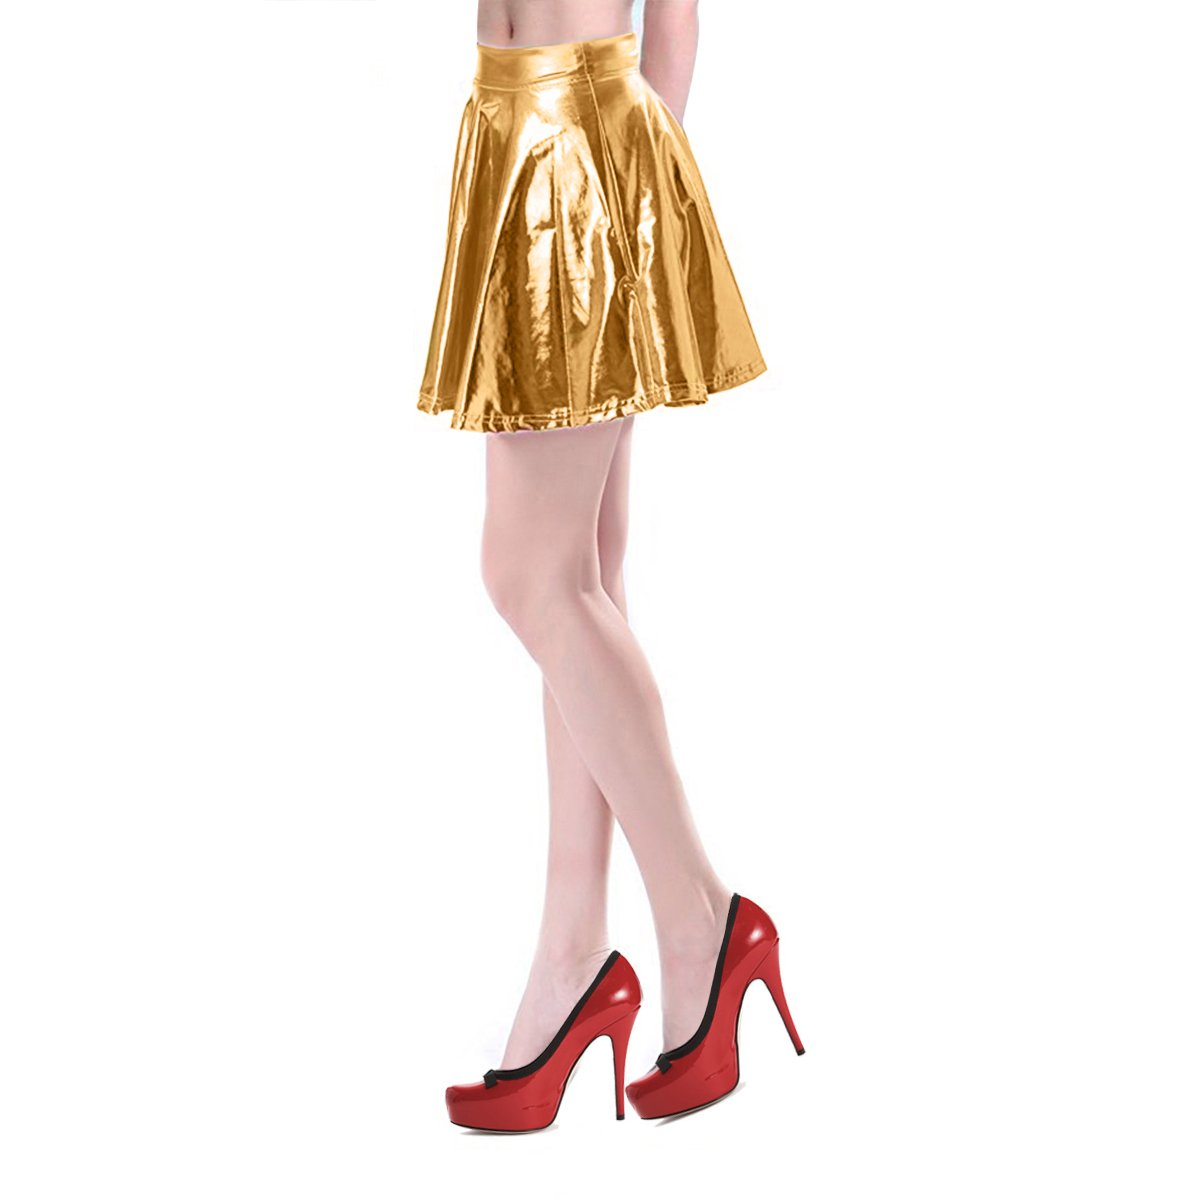 Mother's Day Gifts Pleated Skirt Short Shiny Liquid Metallic Flared Skater Skirt Golden, Small by TQS (Image #3)